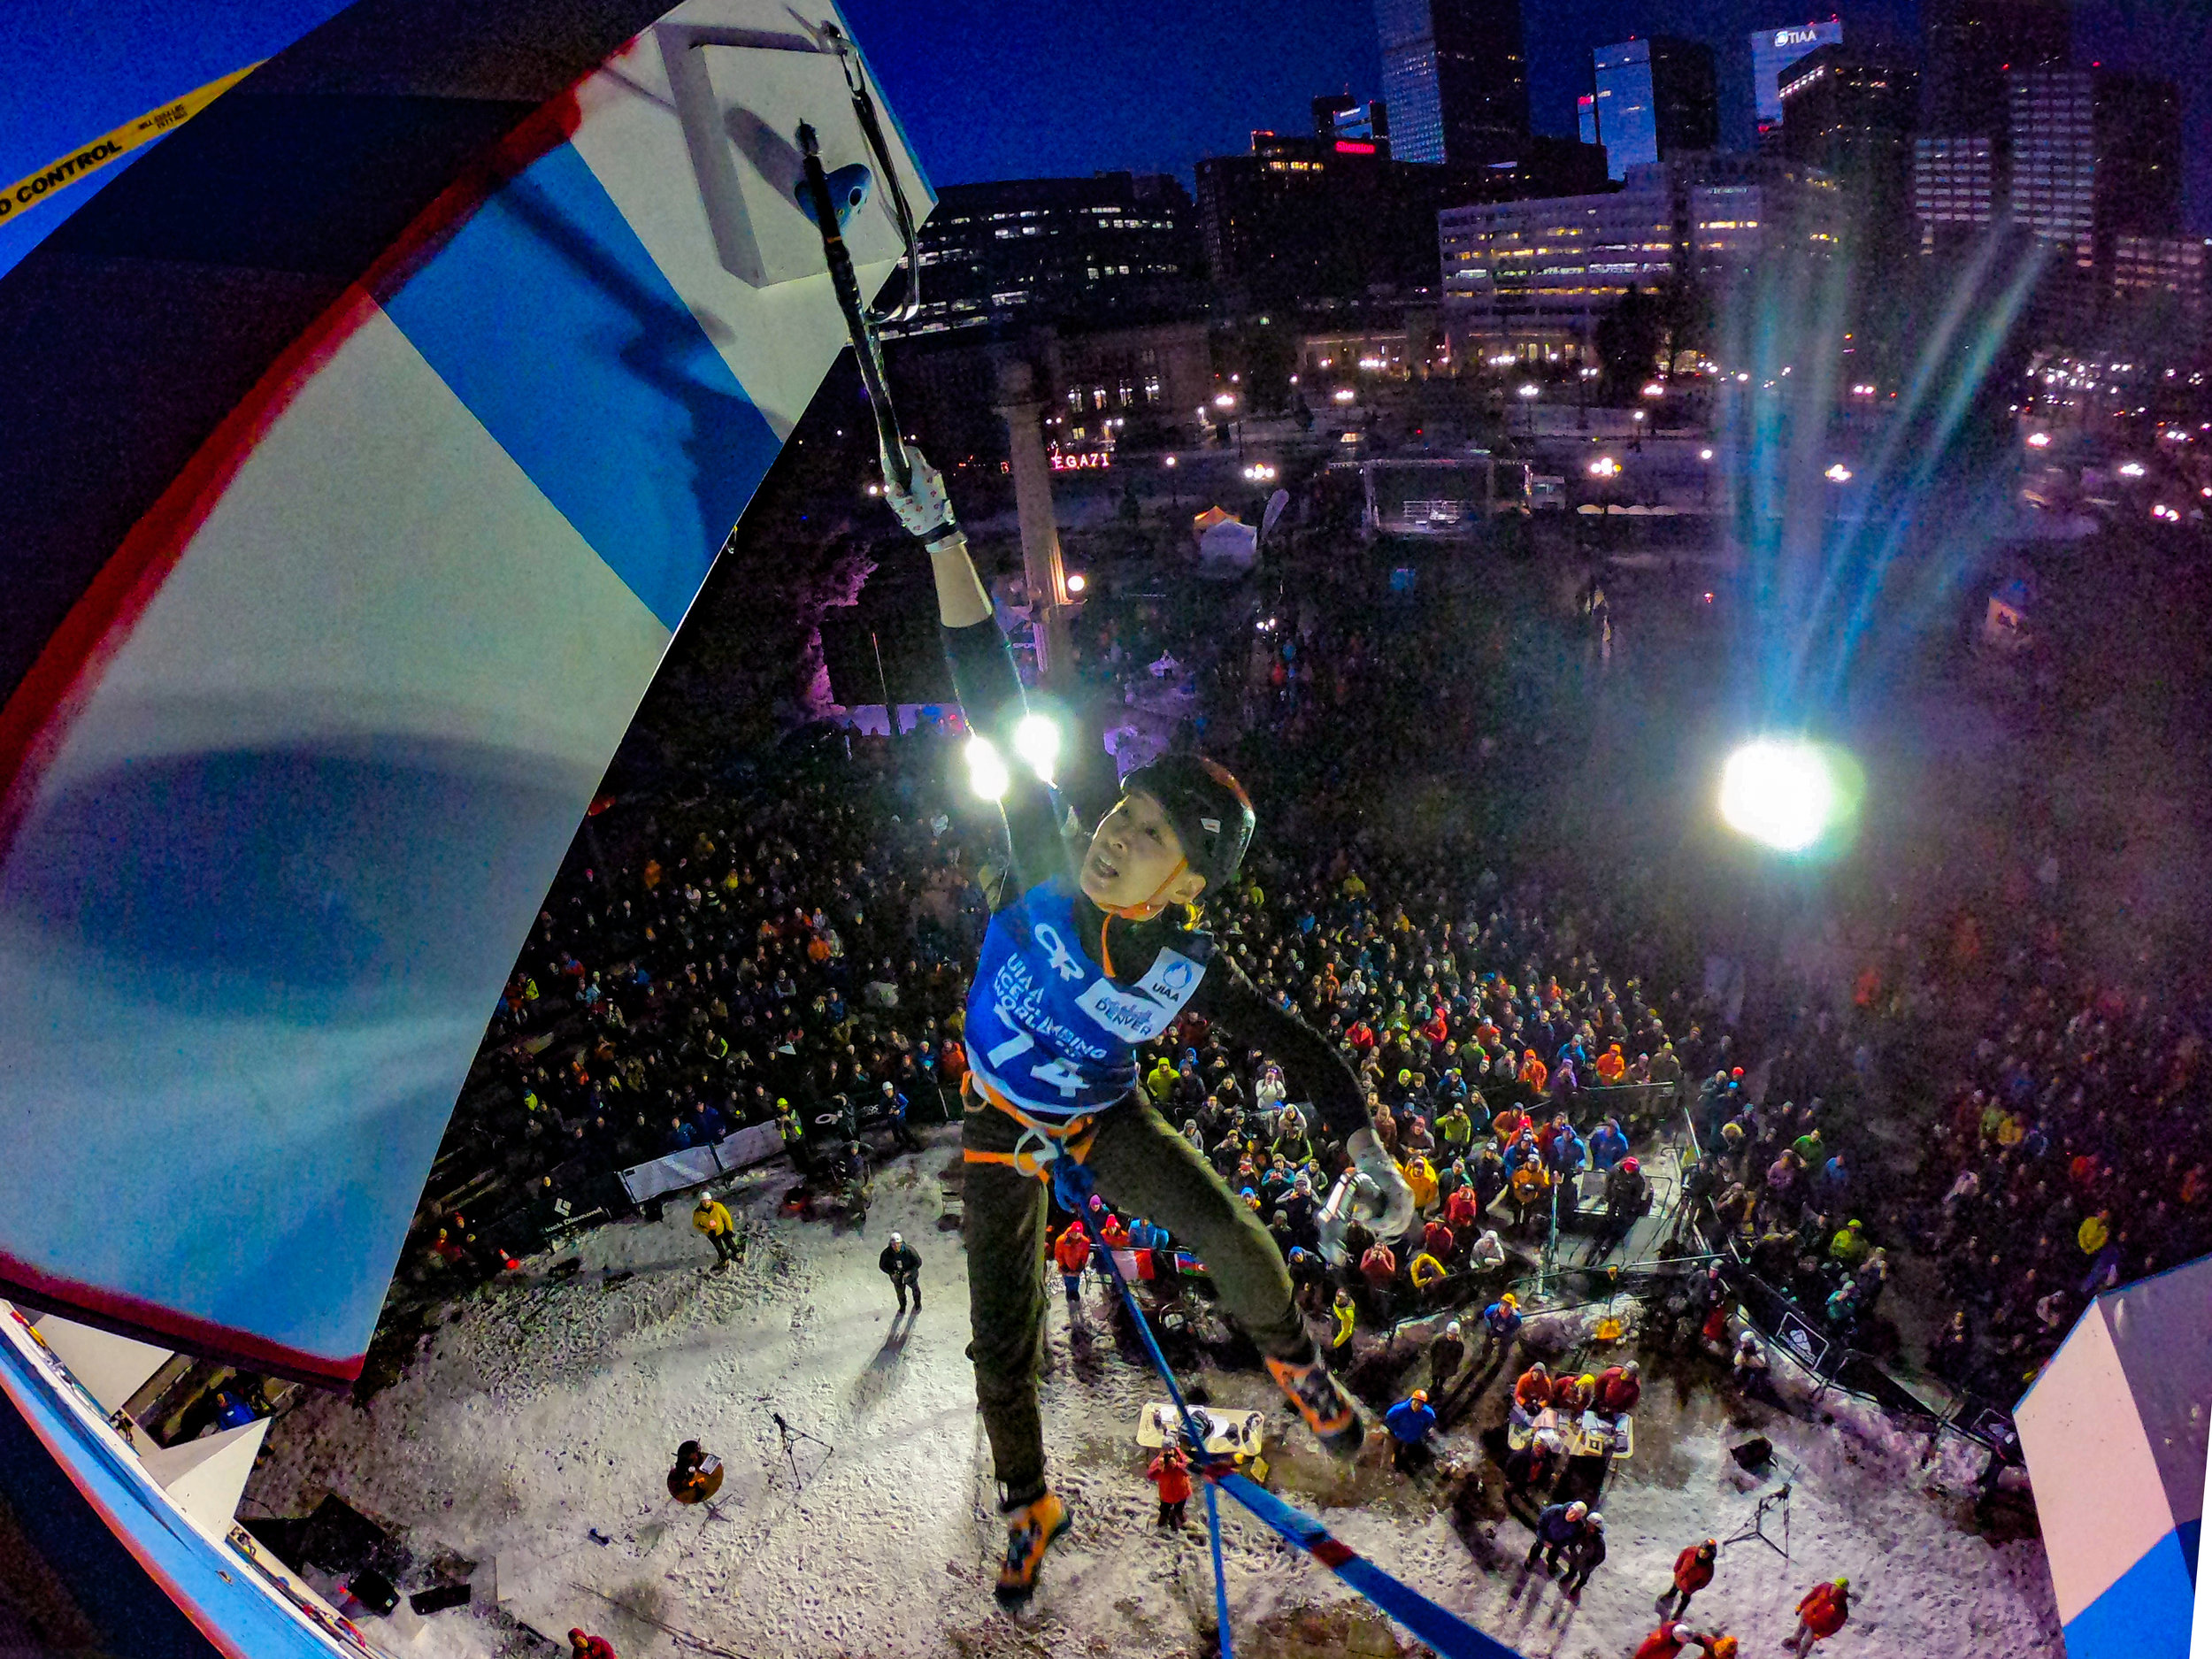 UIAA ICE CLIMBING WORLD CUP FINALS - February 22-24, 2019Denver, Colorado